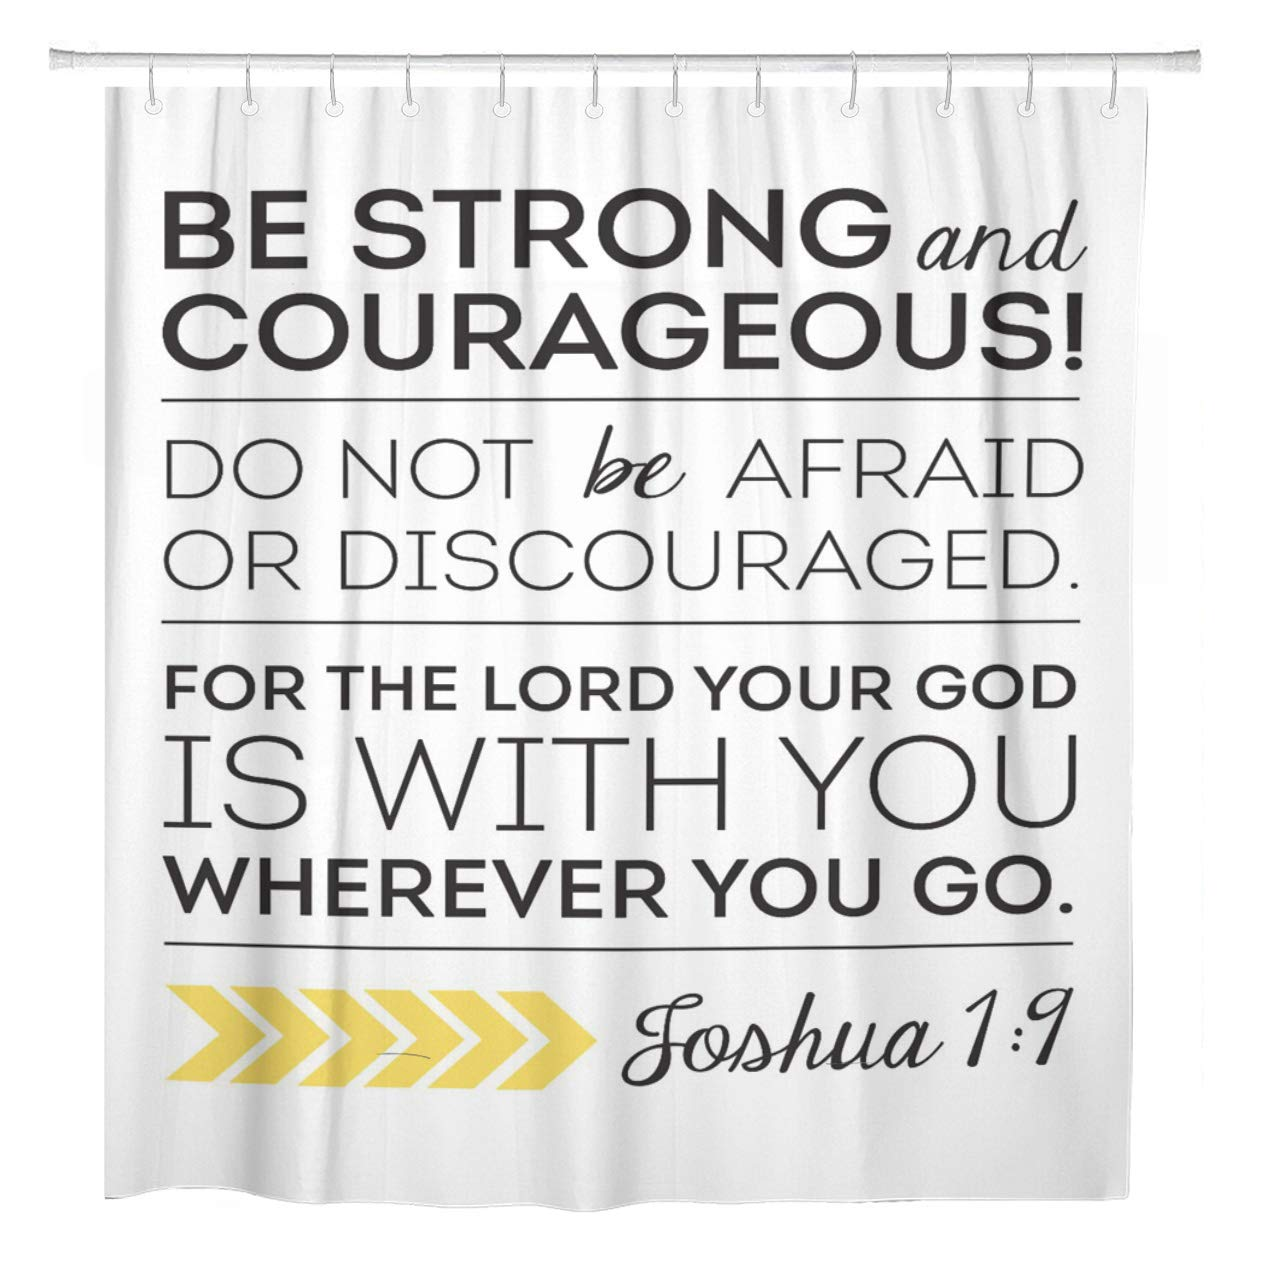 cynlon inspirational bible verse scripture be strong and courageous bathroom decor bath shower curtain 60x72 inch